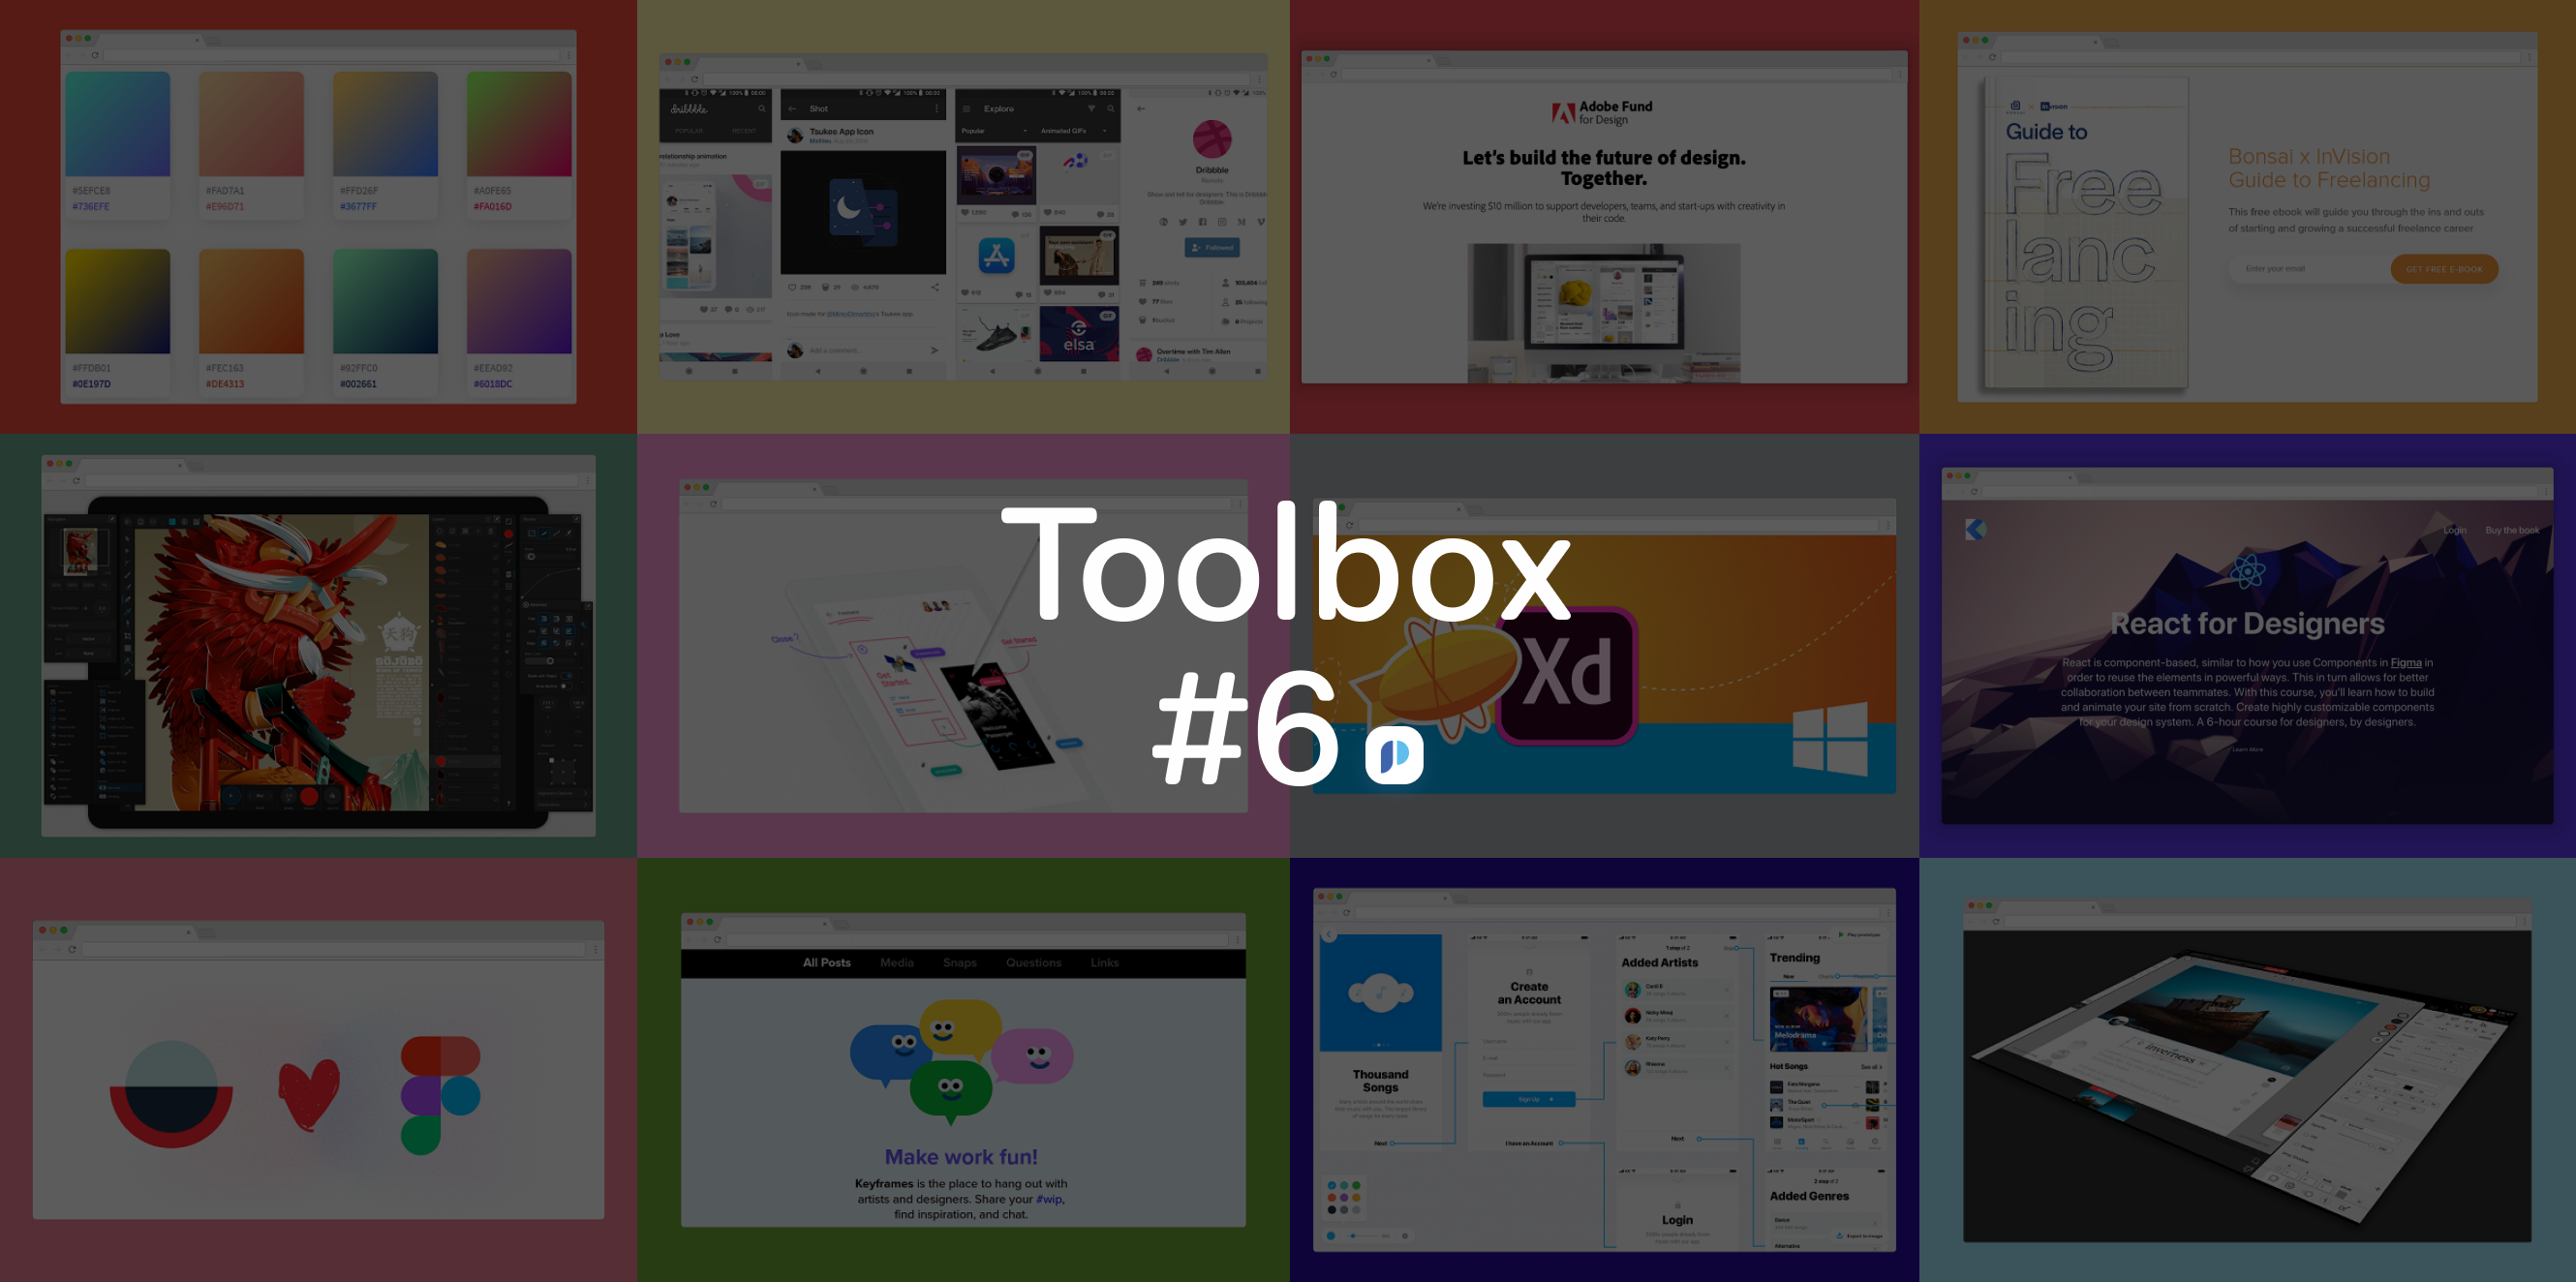 35 New Tools For Ui Design Toolbox 6 Adobe Fund For Design By Prototypr Io Prototypr